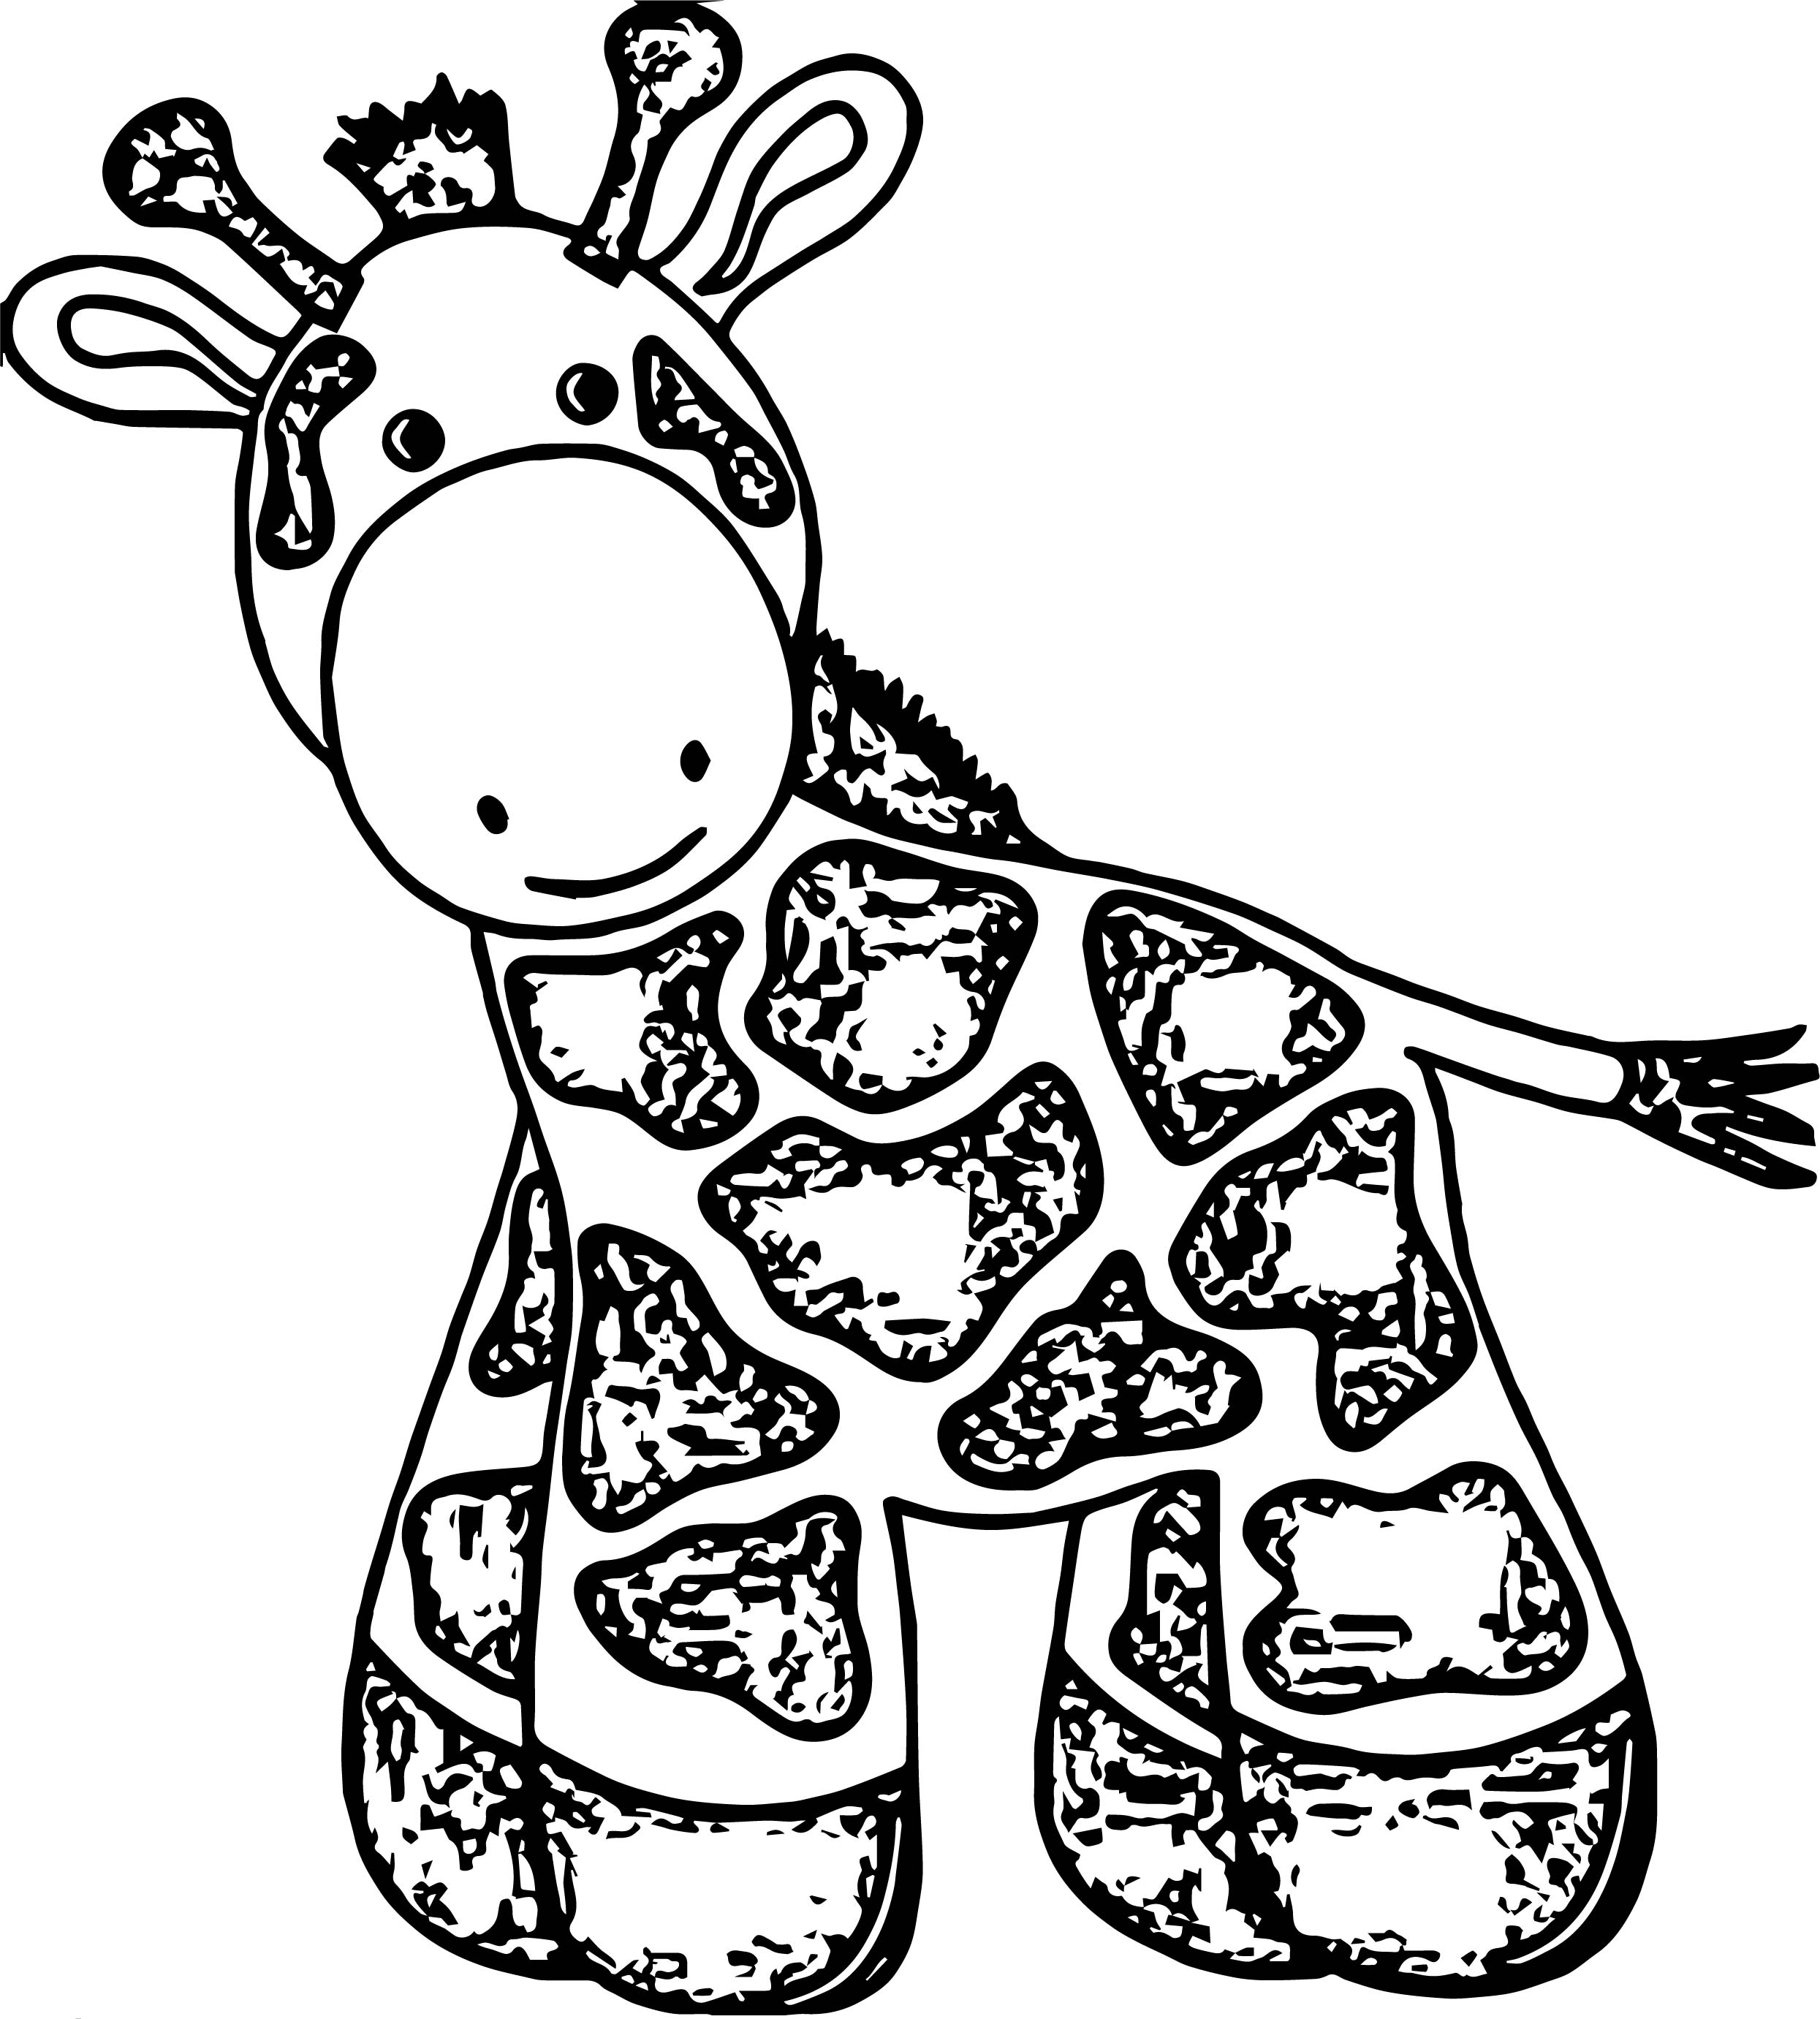 Baby farm animal cute little baby giraffe toy coloring for Baby toys coloring pages